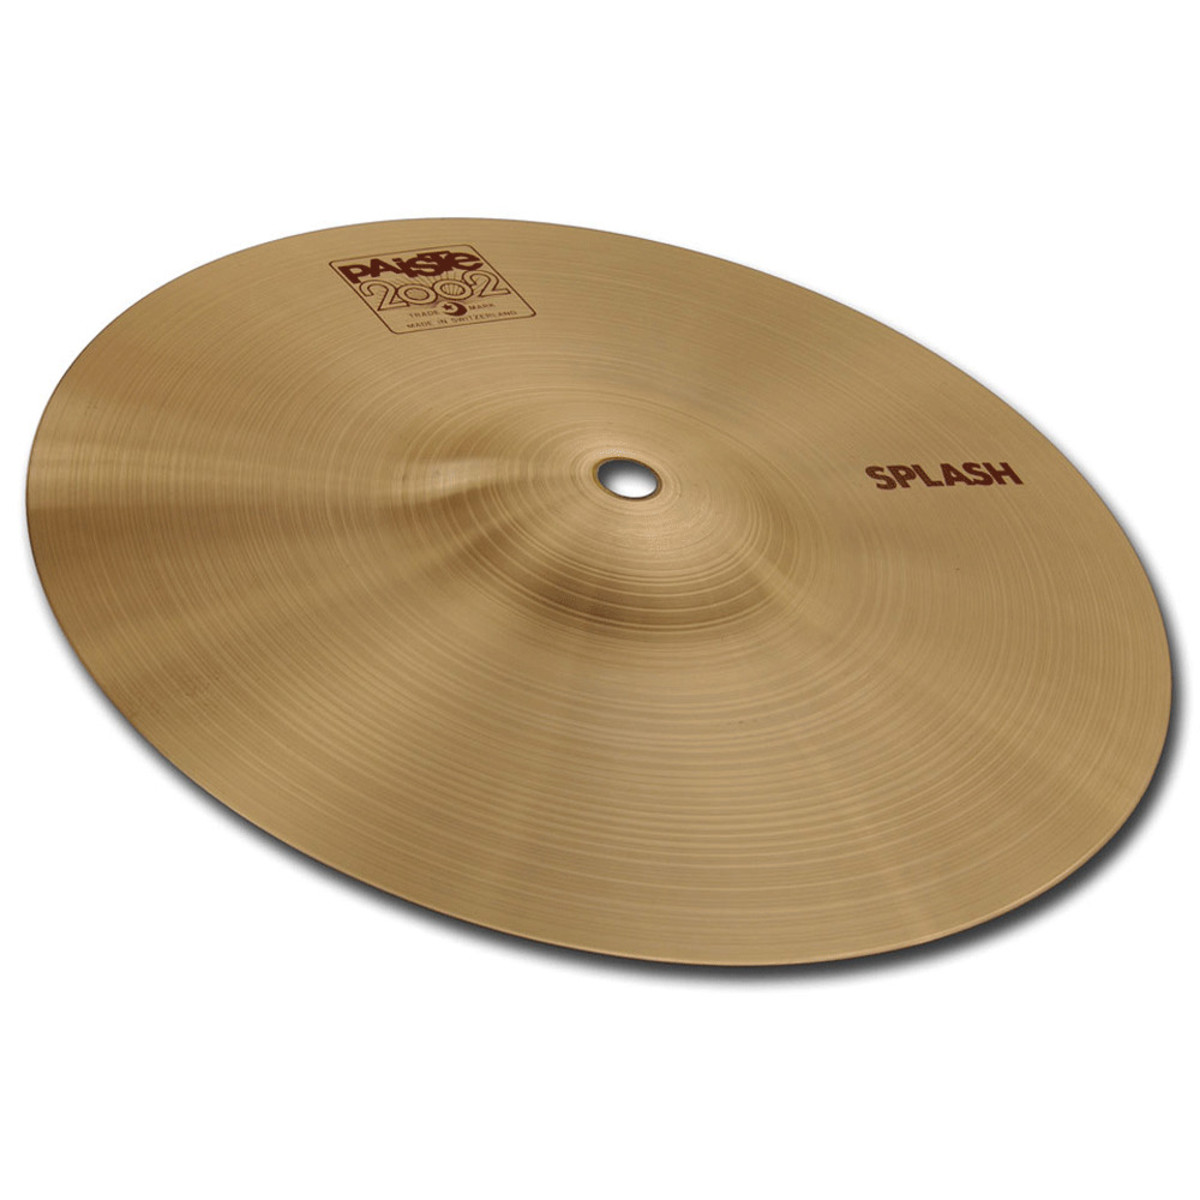 "Paiste 2002-Series 10"" Splash Cymbal by Paiste"